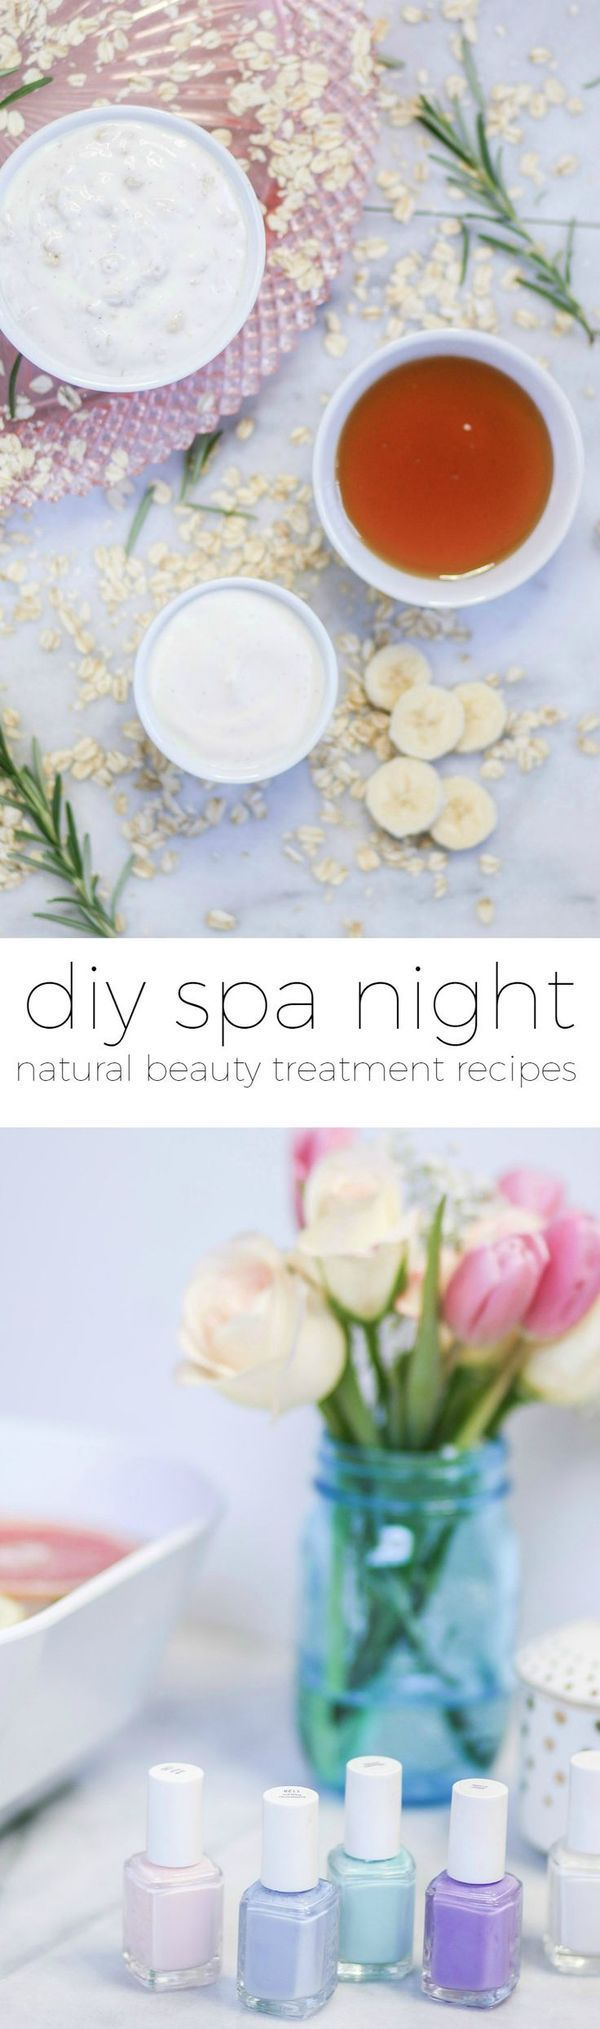 Learn how to create a luxurious DIY spa night at home with these easy DIY spa treatment recipes. You'll learn how to make a DIY lip scrub, moisturizing hair mask, soothing face mask, and chamomile hair rinse in this post. Plus, you'll learn how to easily